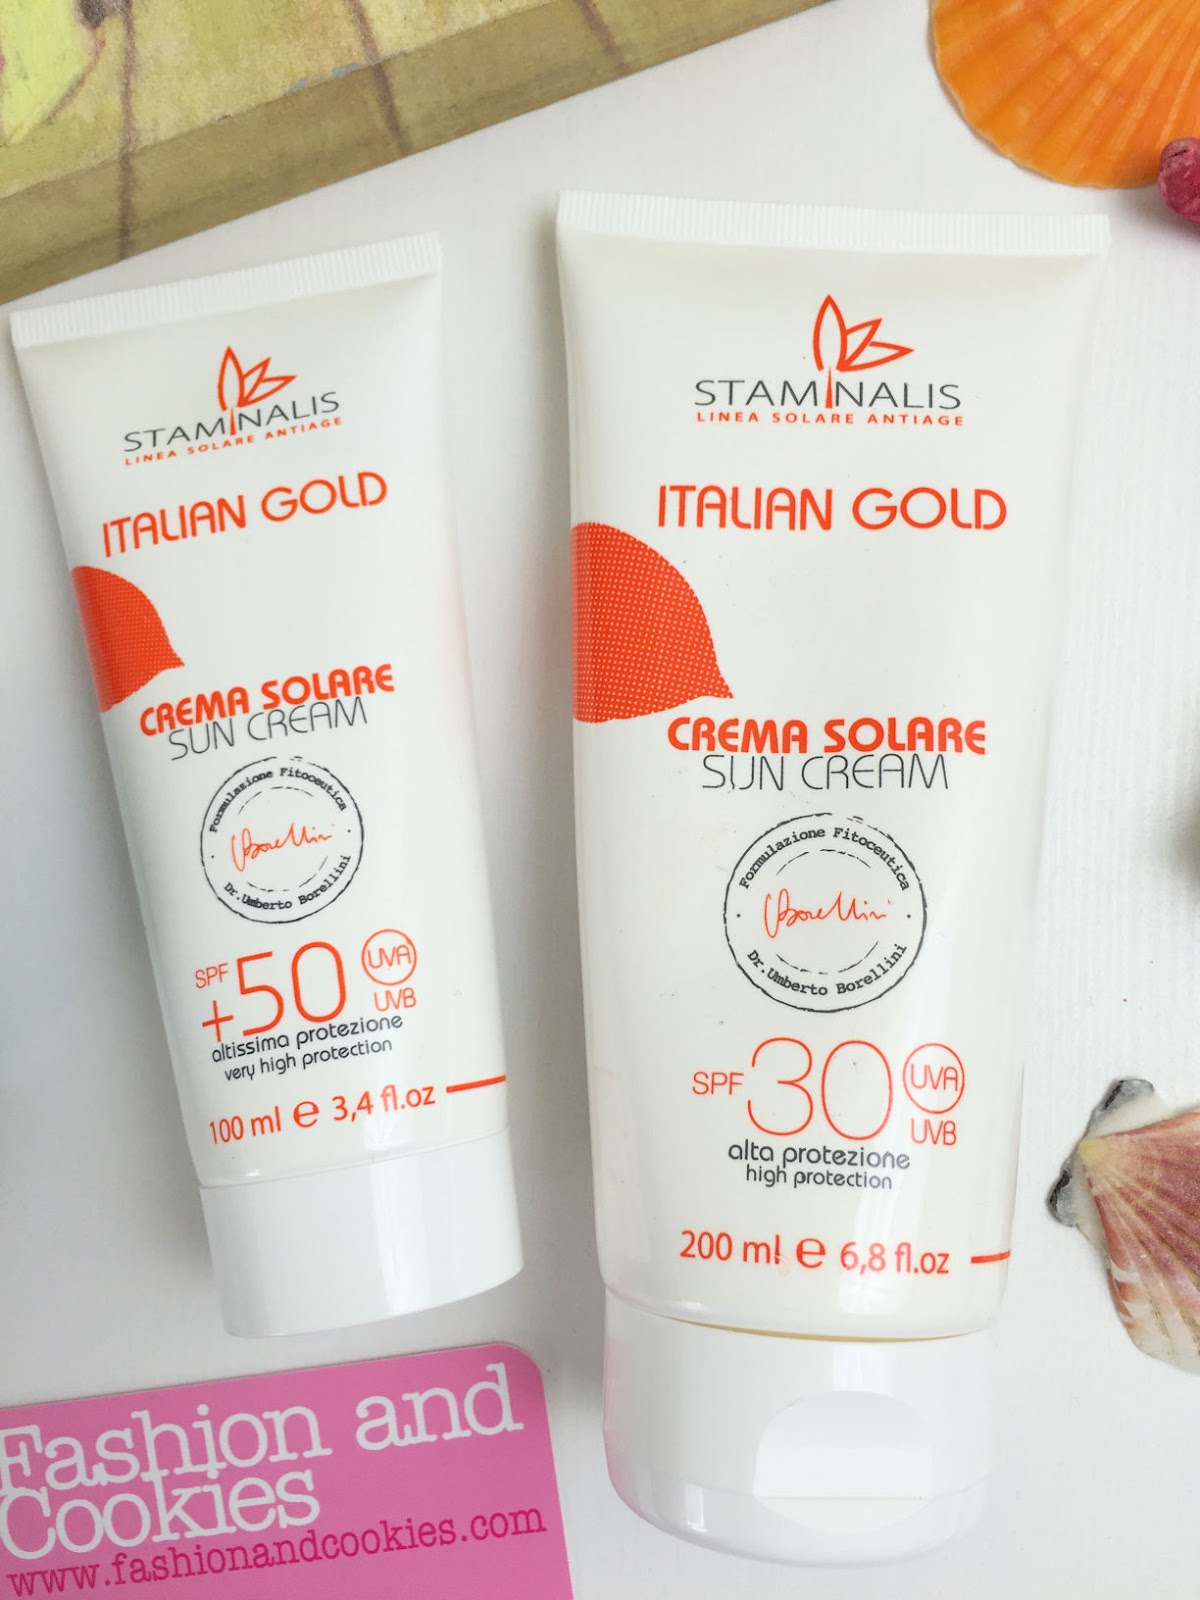 Creme solari antiage Staminalis Italian Gold su Fashion and Cookies beauty blog, beauty blogger